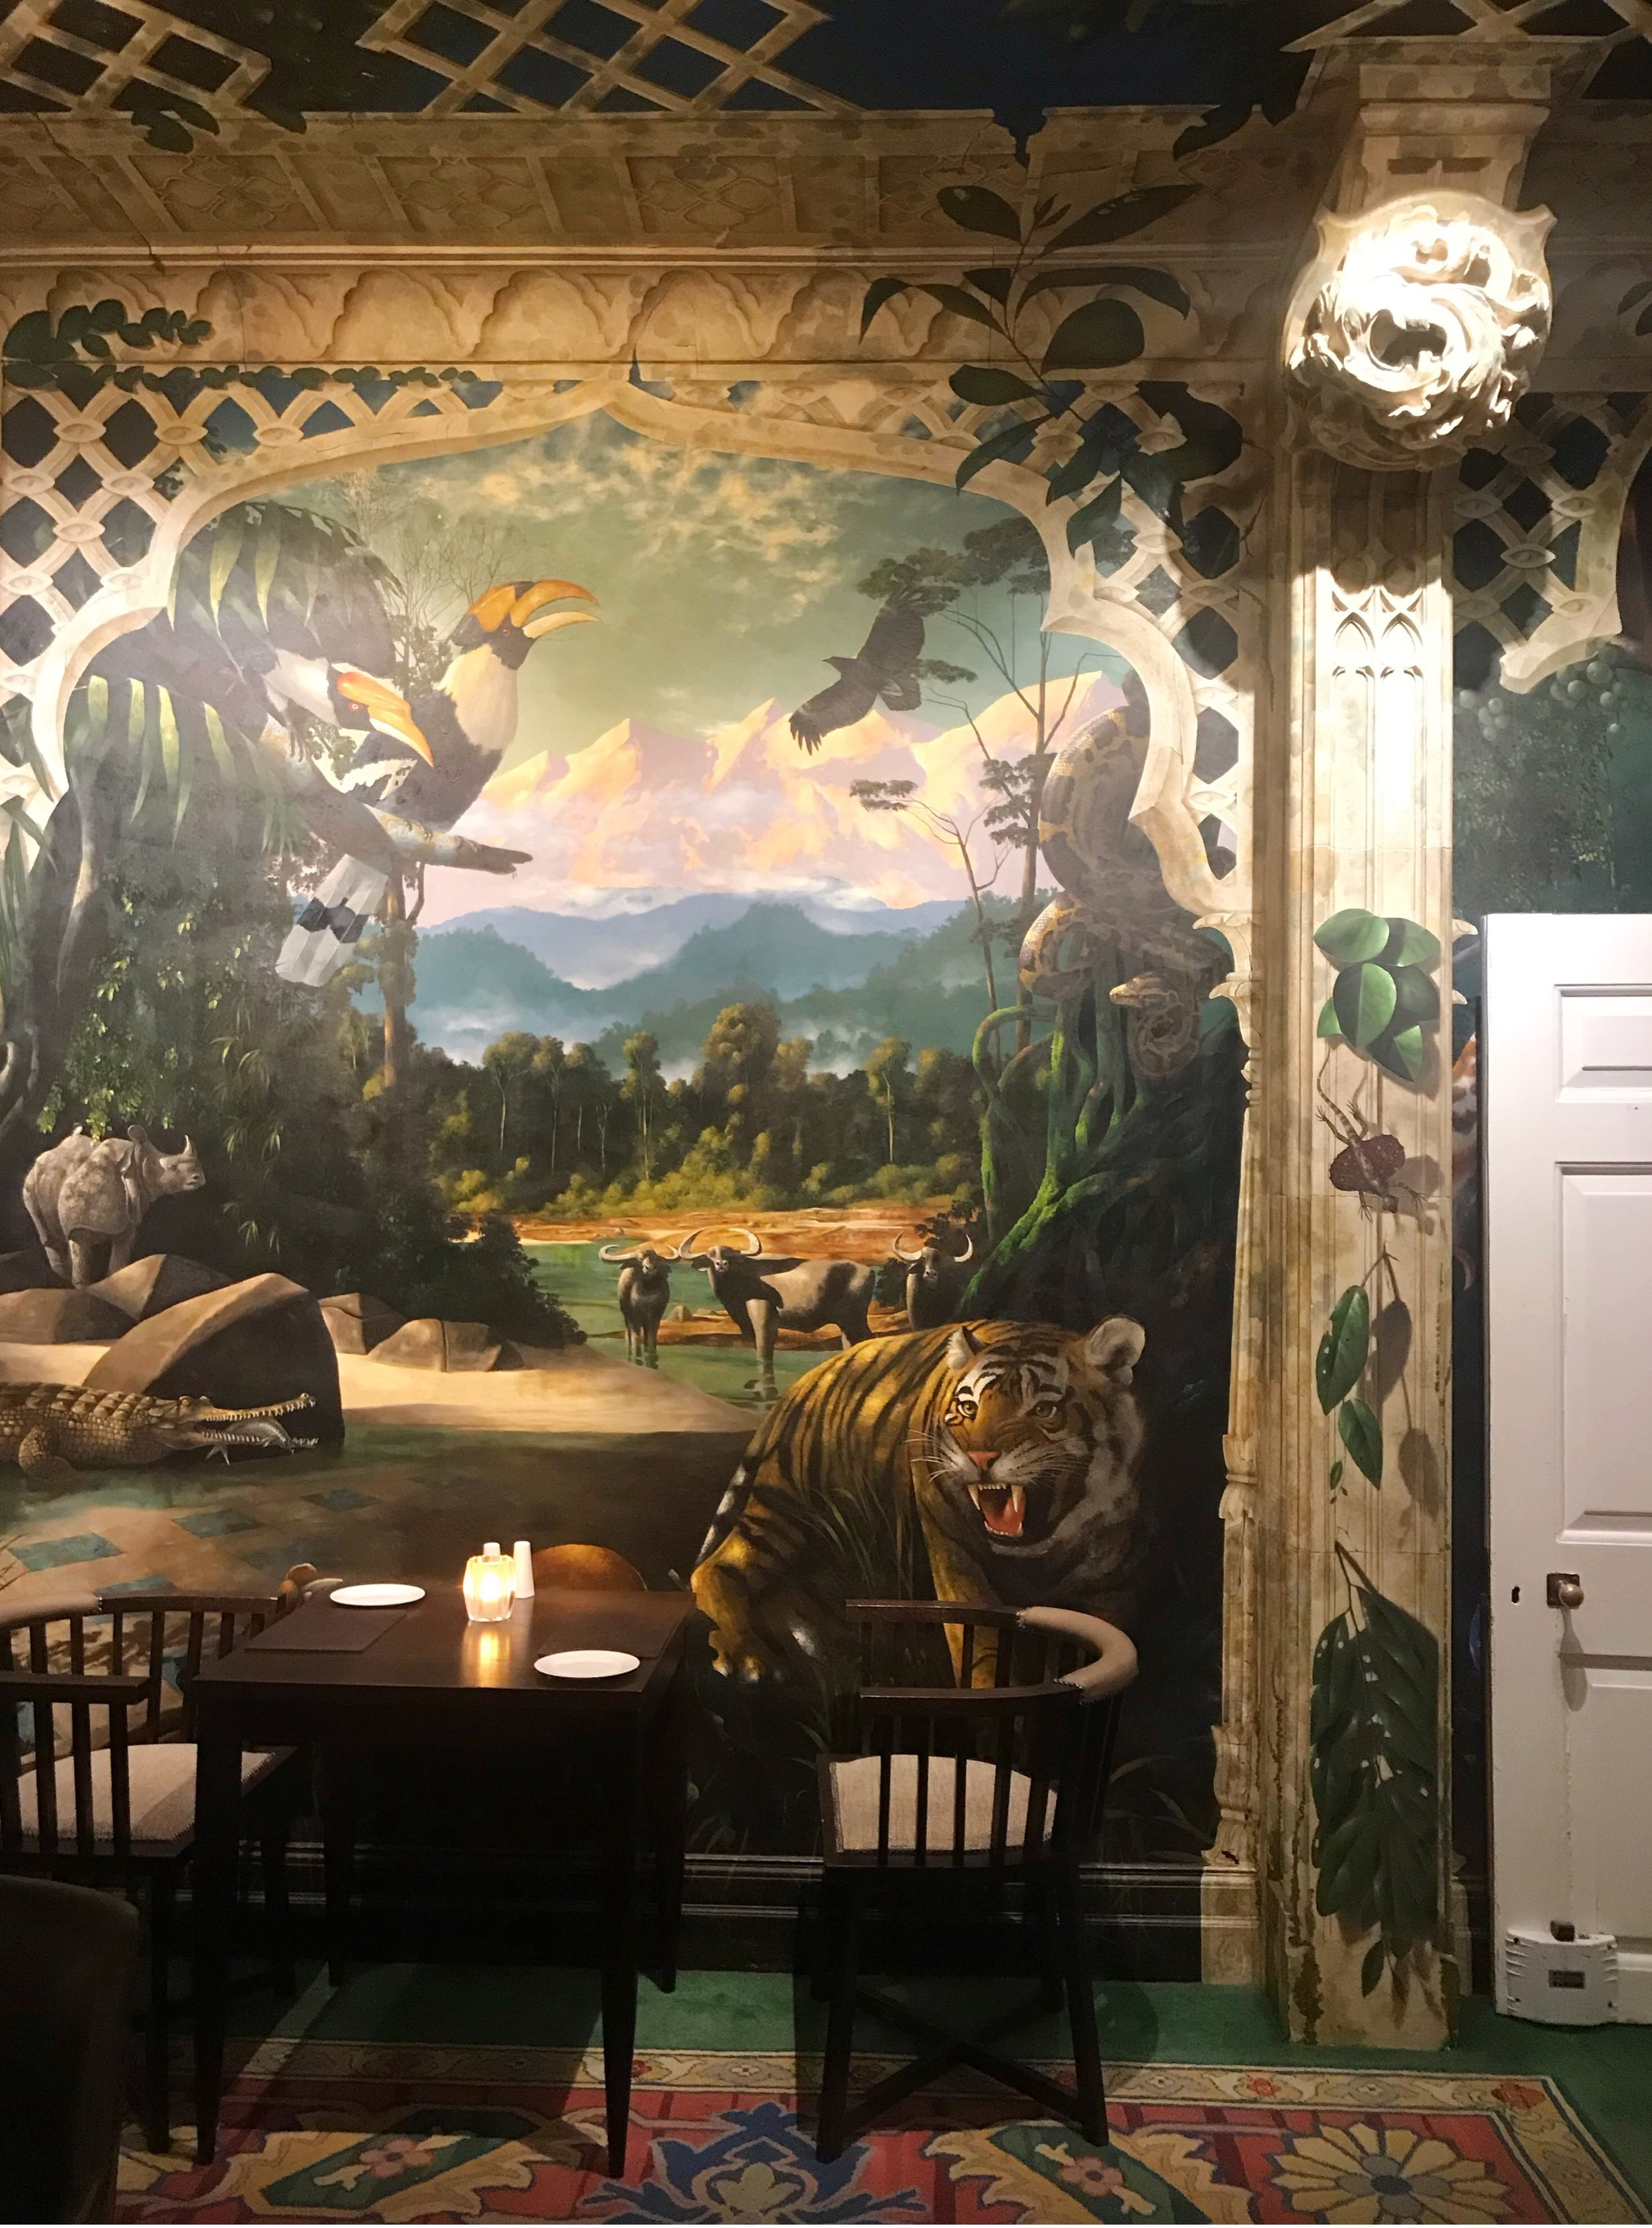 The paintings on the dining room walls move if you look for long enough